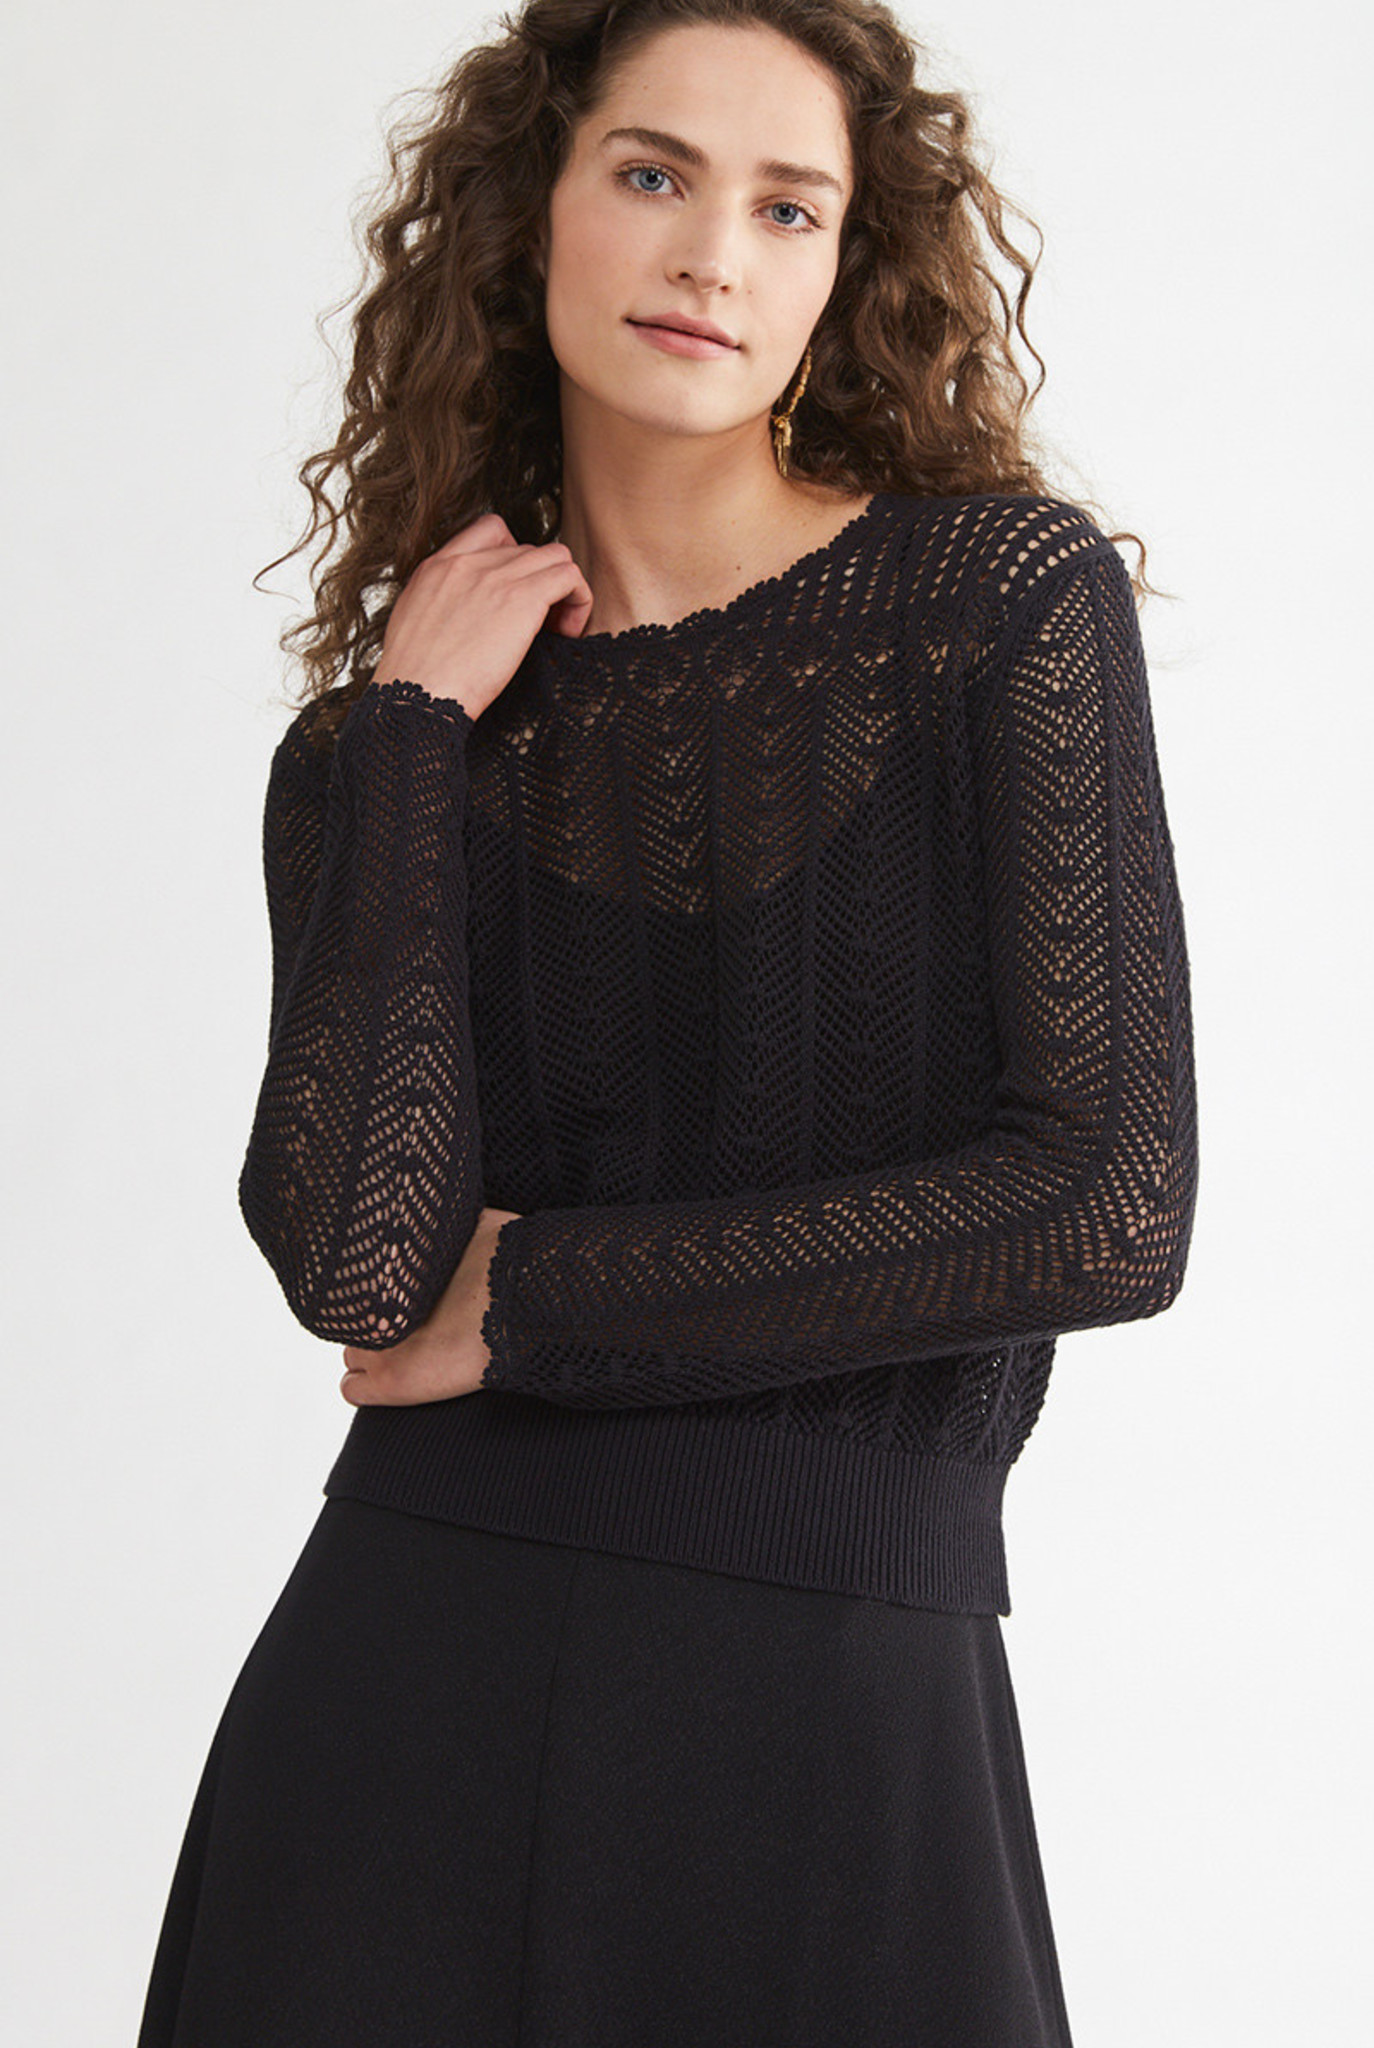 Nansa sweater Black